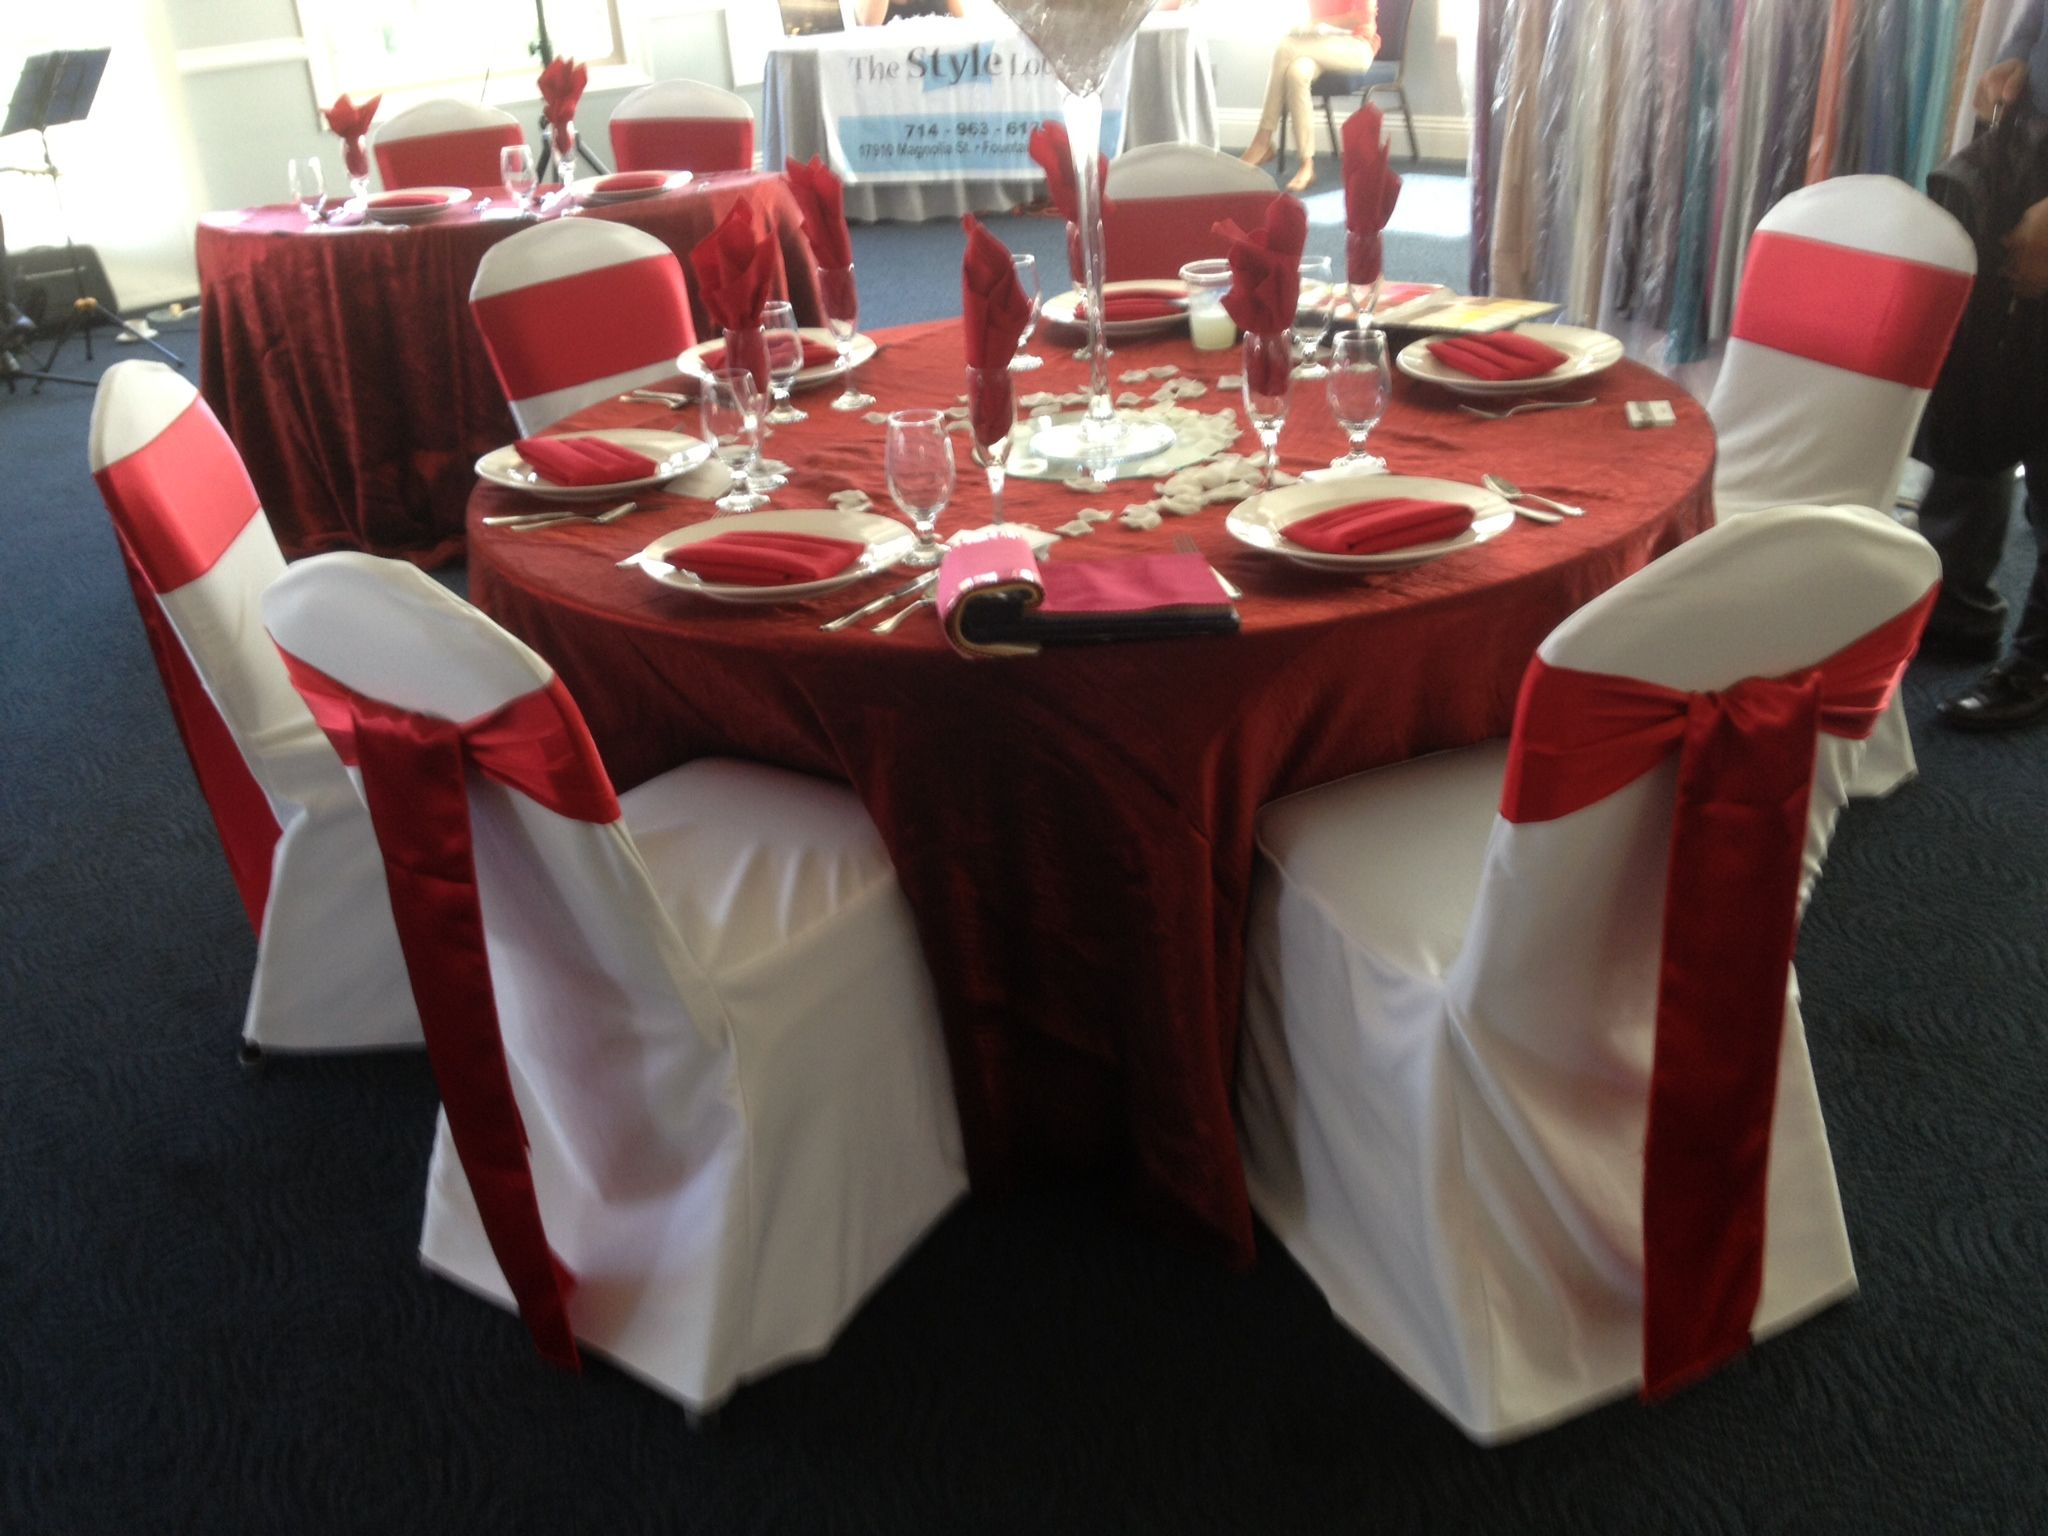 Christmas Wedding Chair Covers Banana Rocker White Cover And Red Sash Chaircovers Chaircover